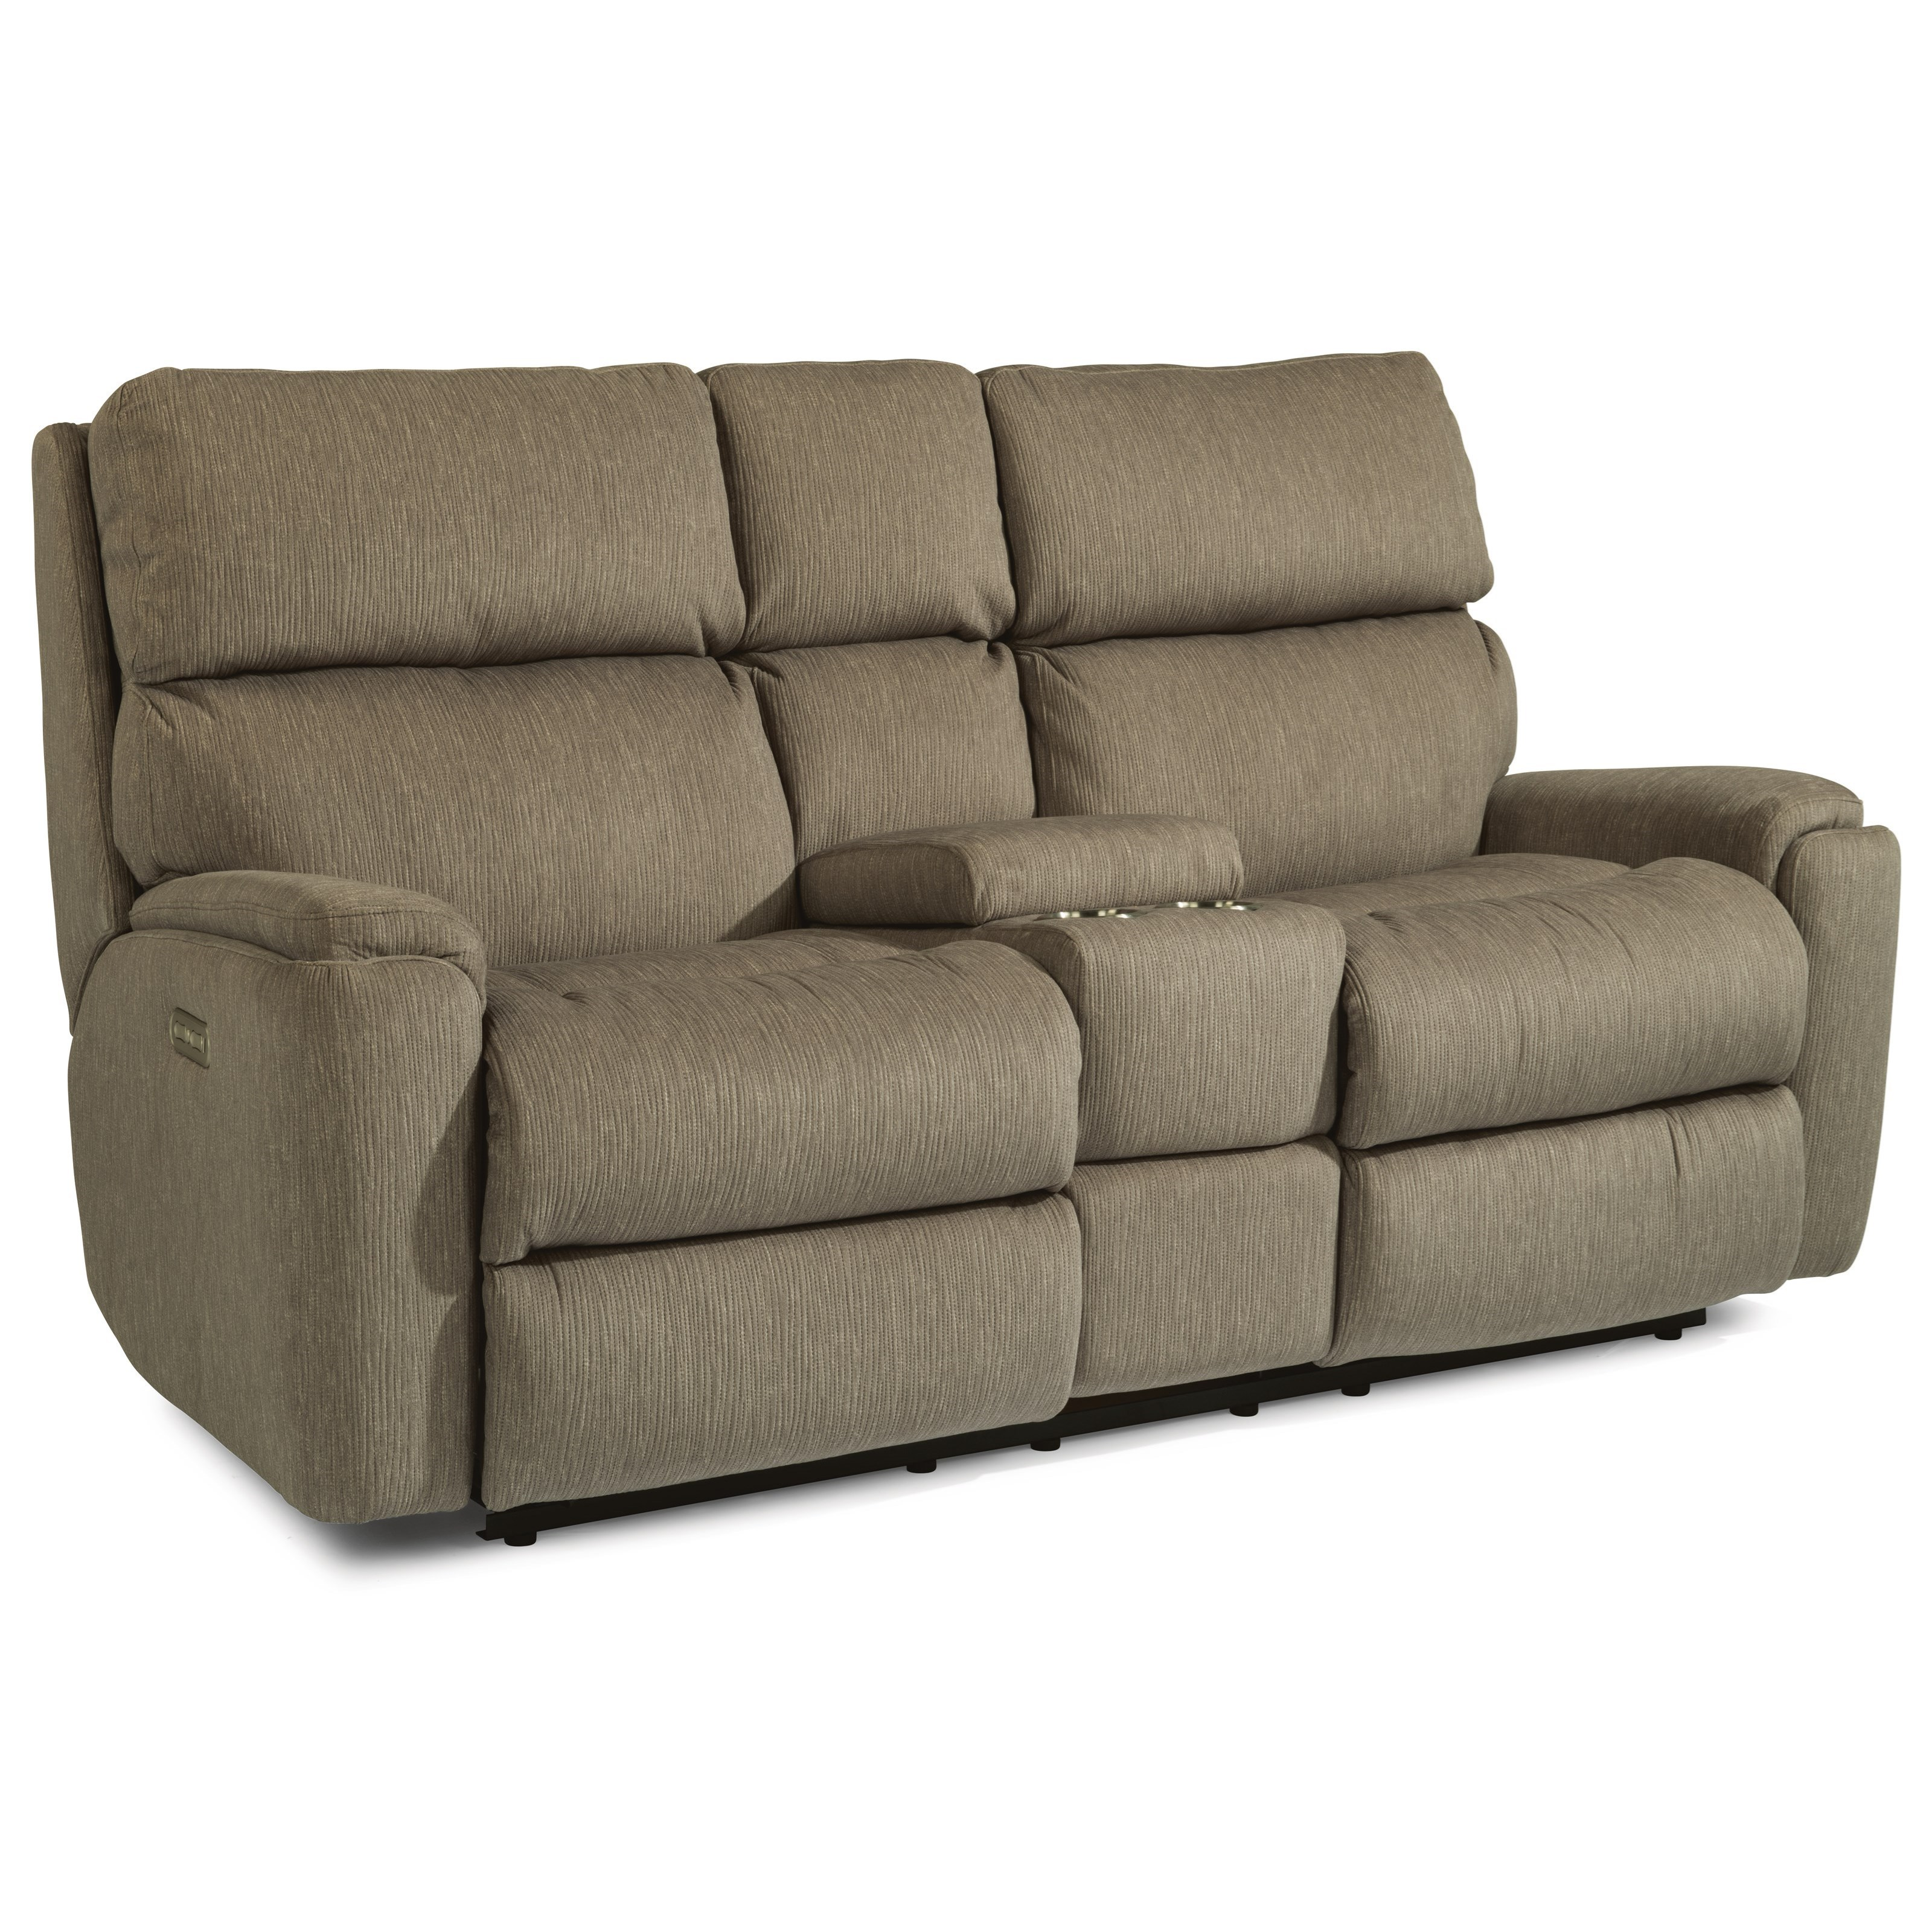 Rio Reclining Loveseat with Console by Flexsteel at Walker's Furniture